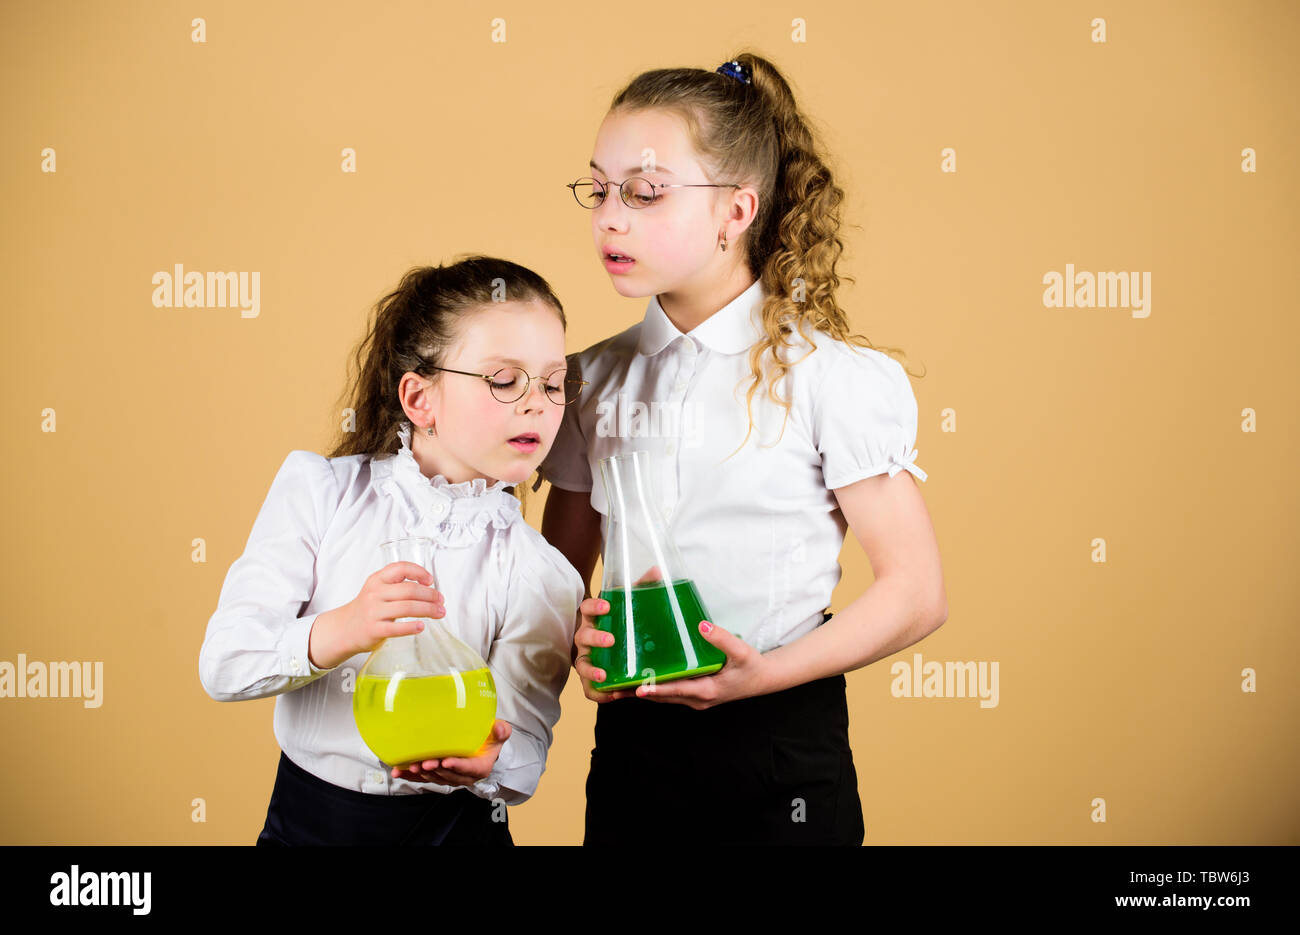 little smart girls with testing flask. back to school. knowledge and education. children study at biology lesson. science research in lab. chemistry flask with liquid. testing flask in hands of kids. - Stock Image